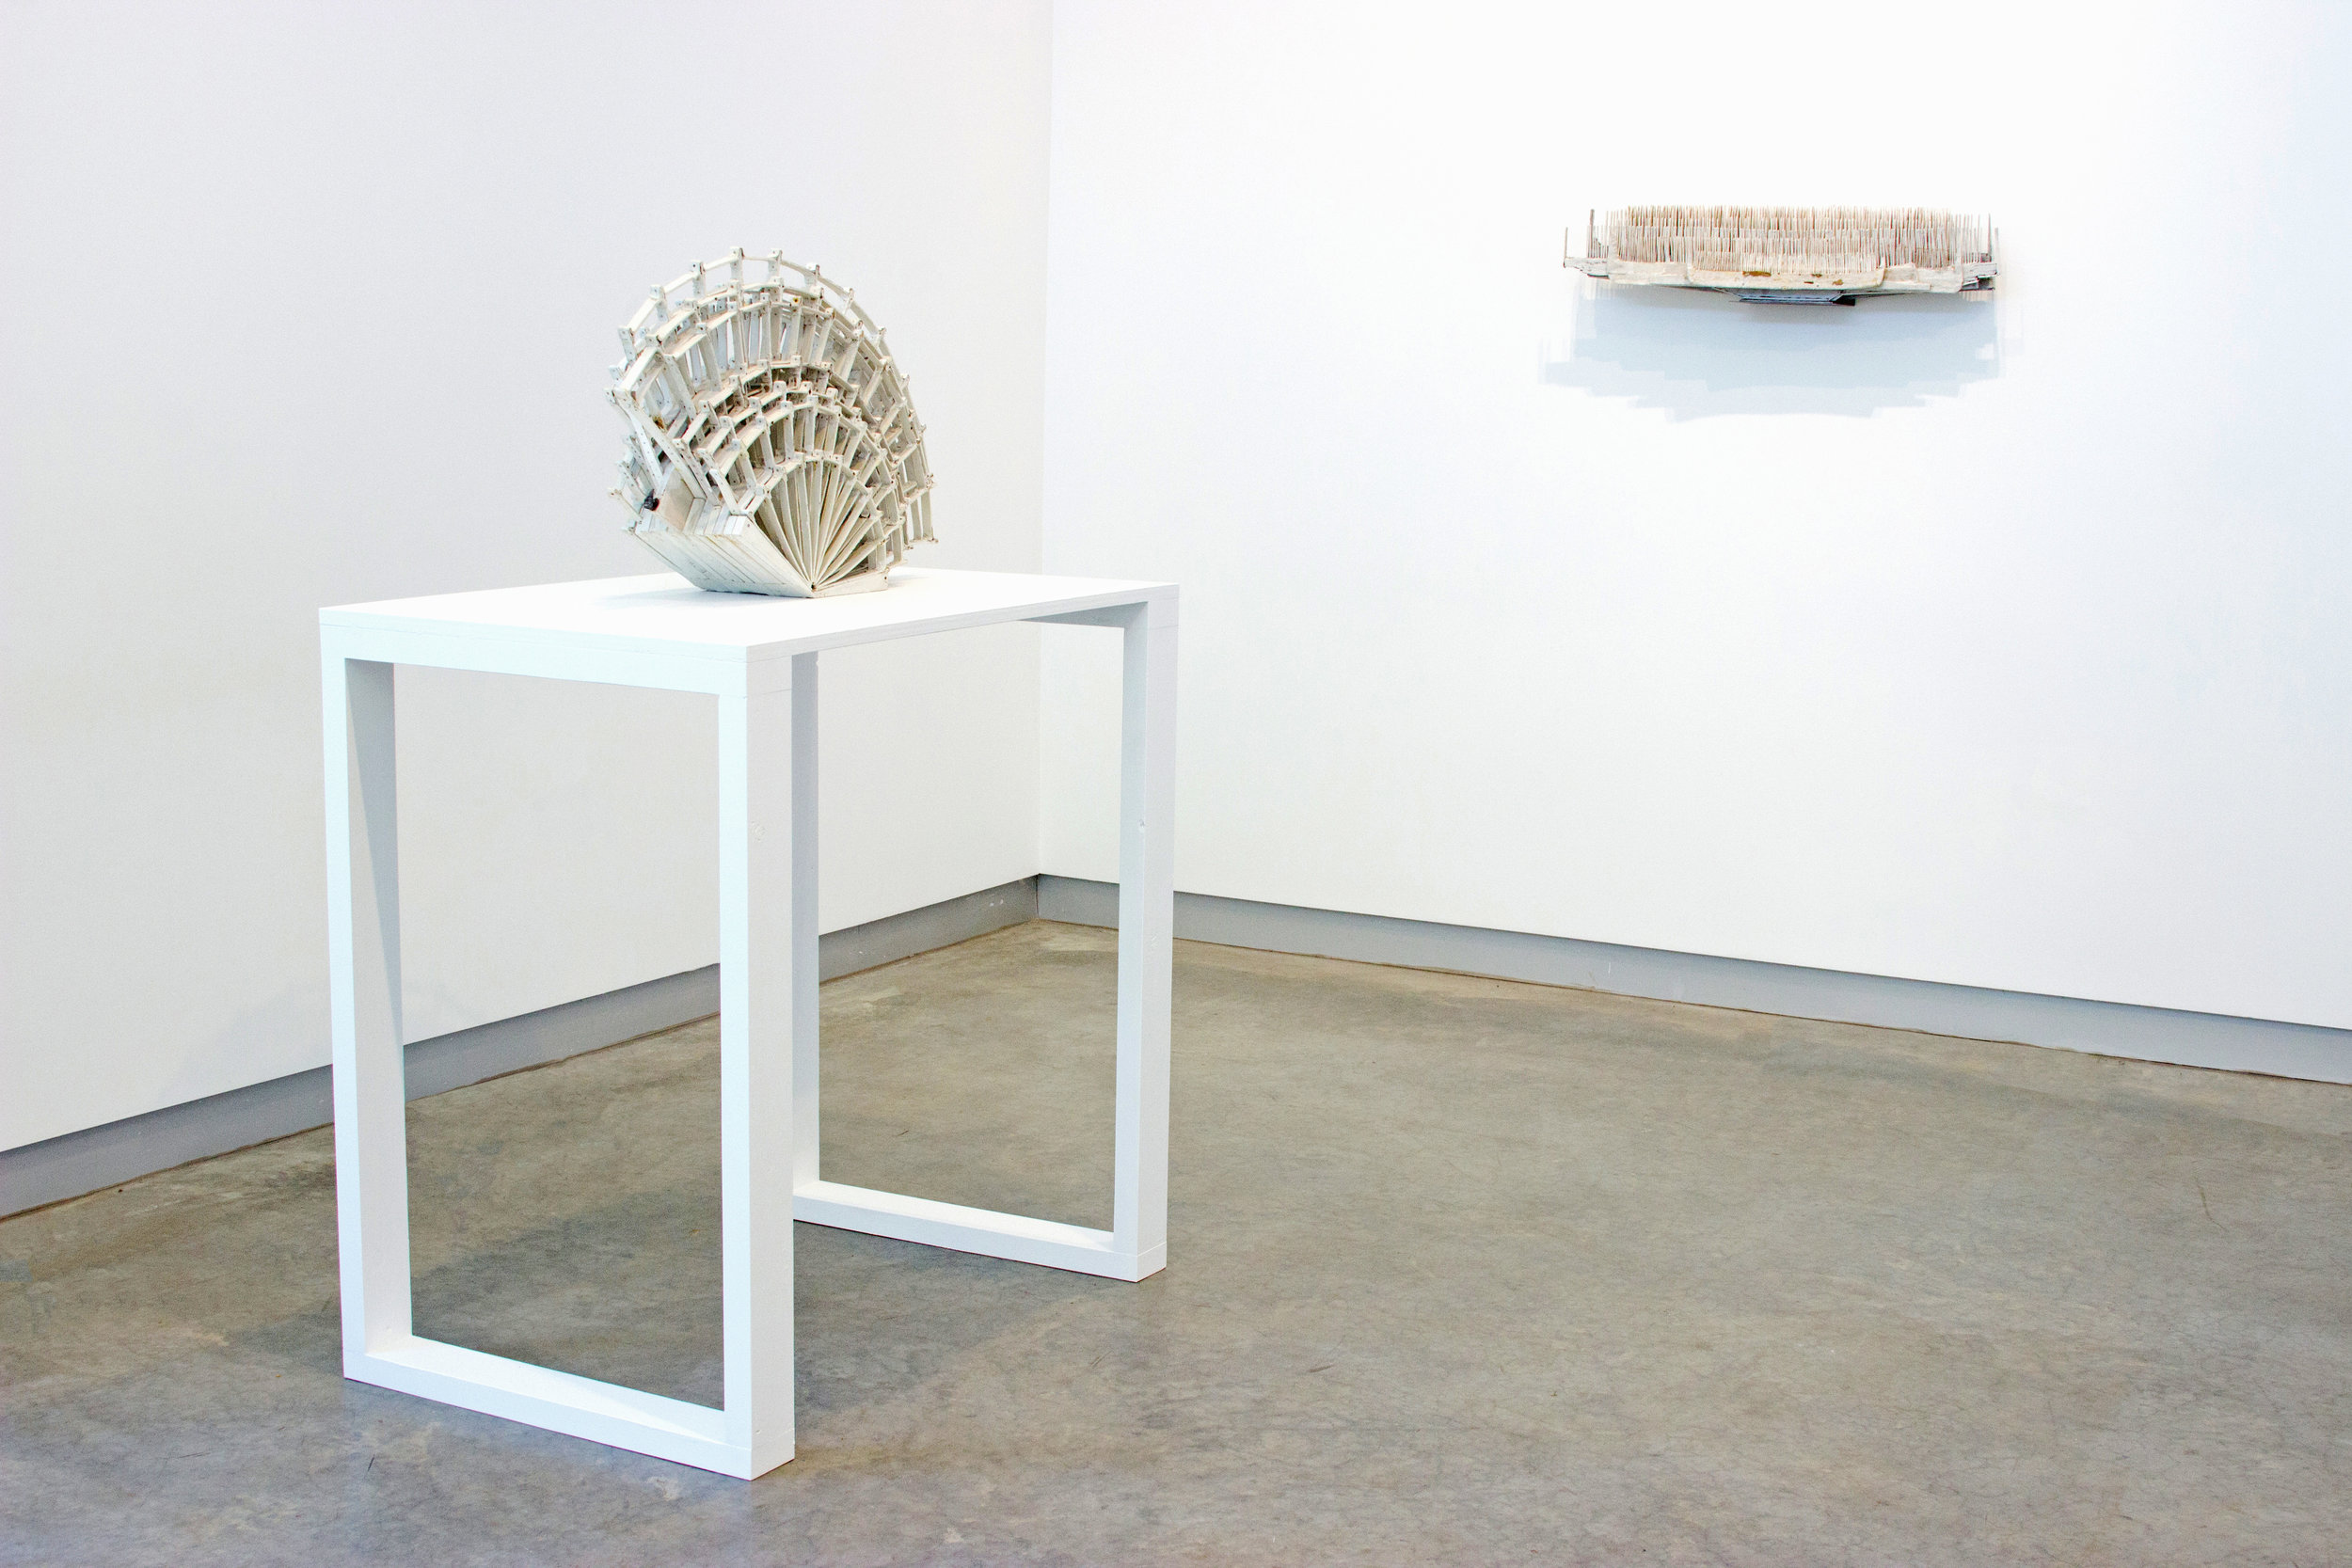 untitled fan  and  seven combs  (installation view), 2018